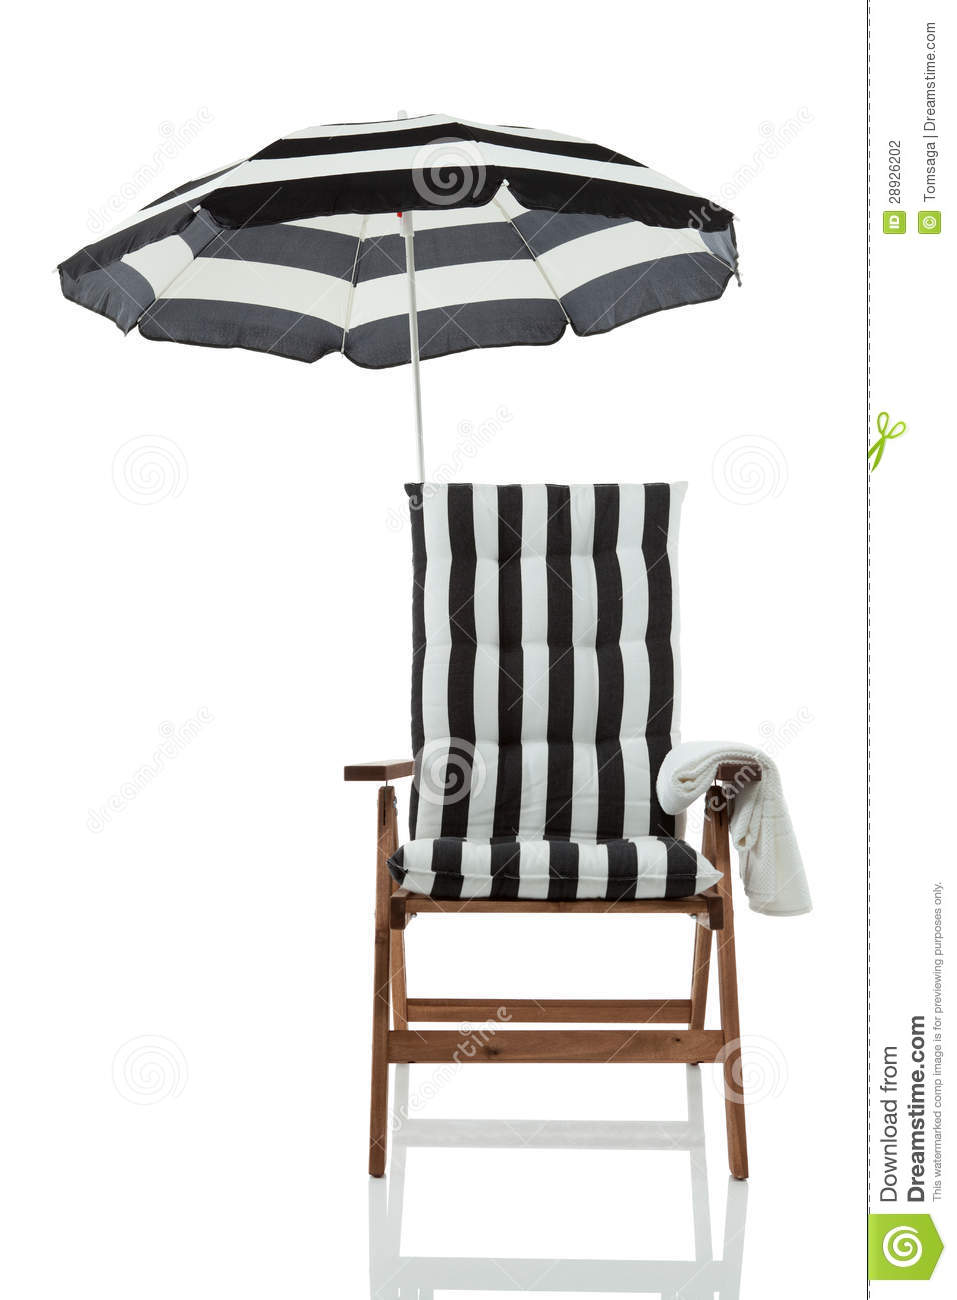 Beach chair and umbrella black and white - Beach Chair With Umbrella Front View